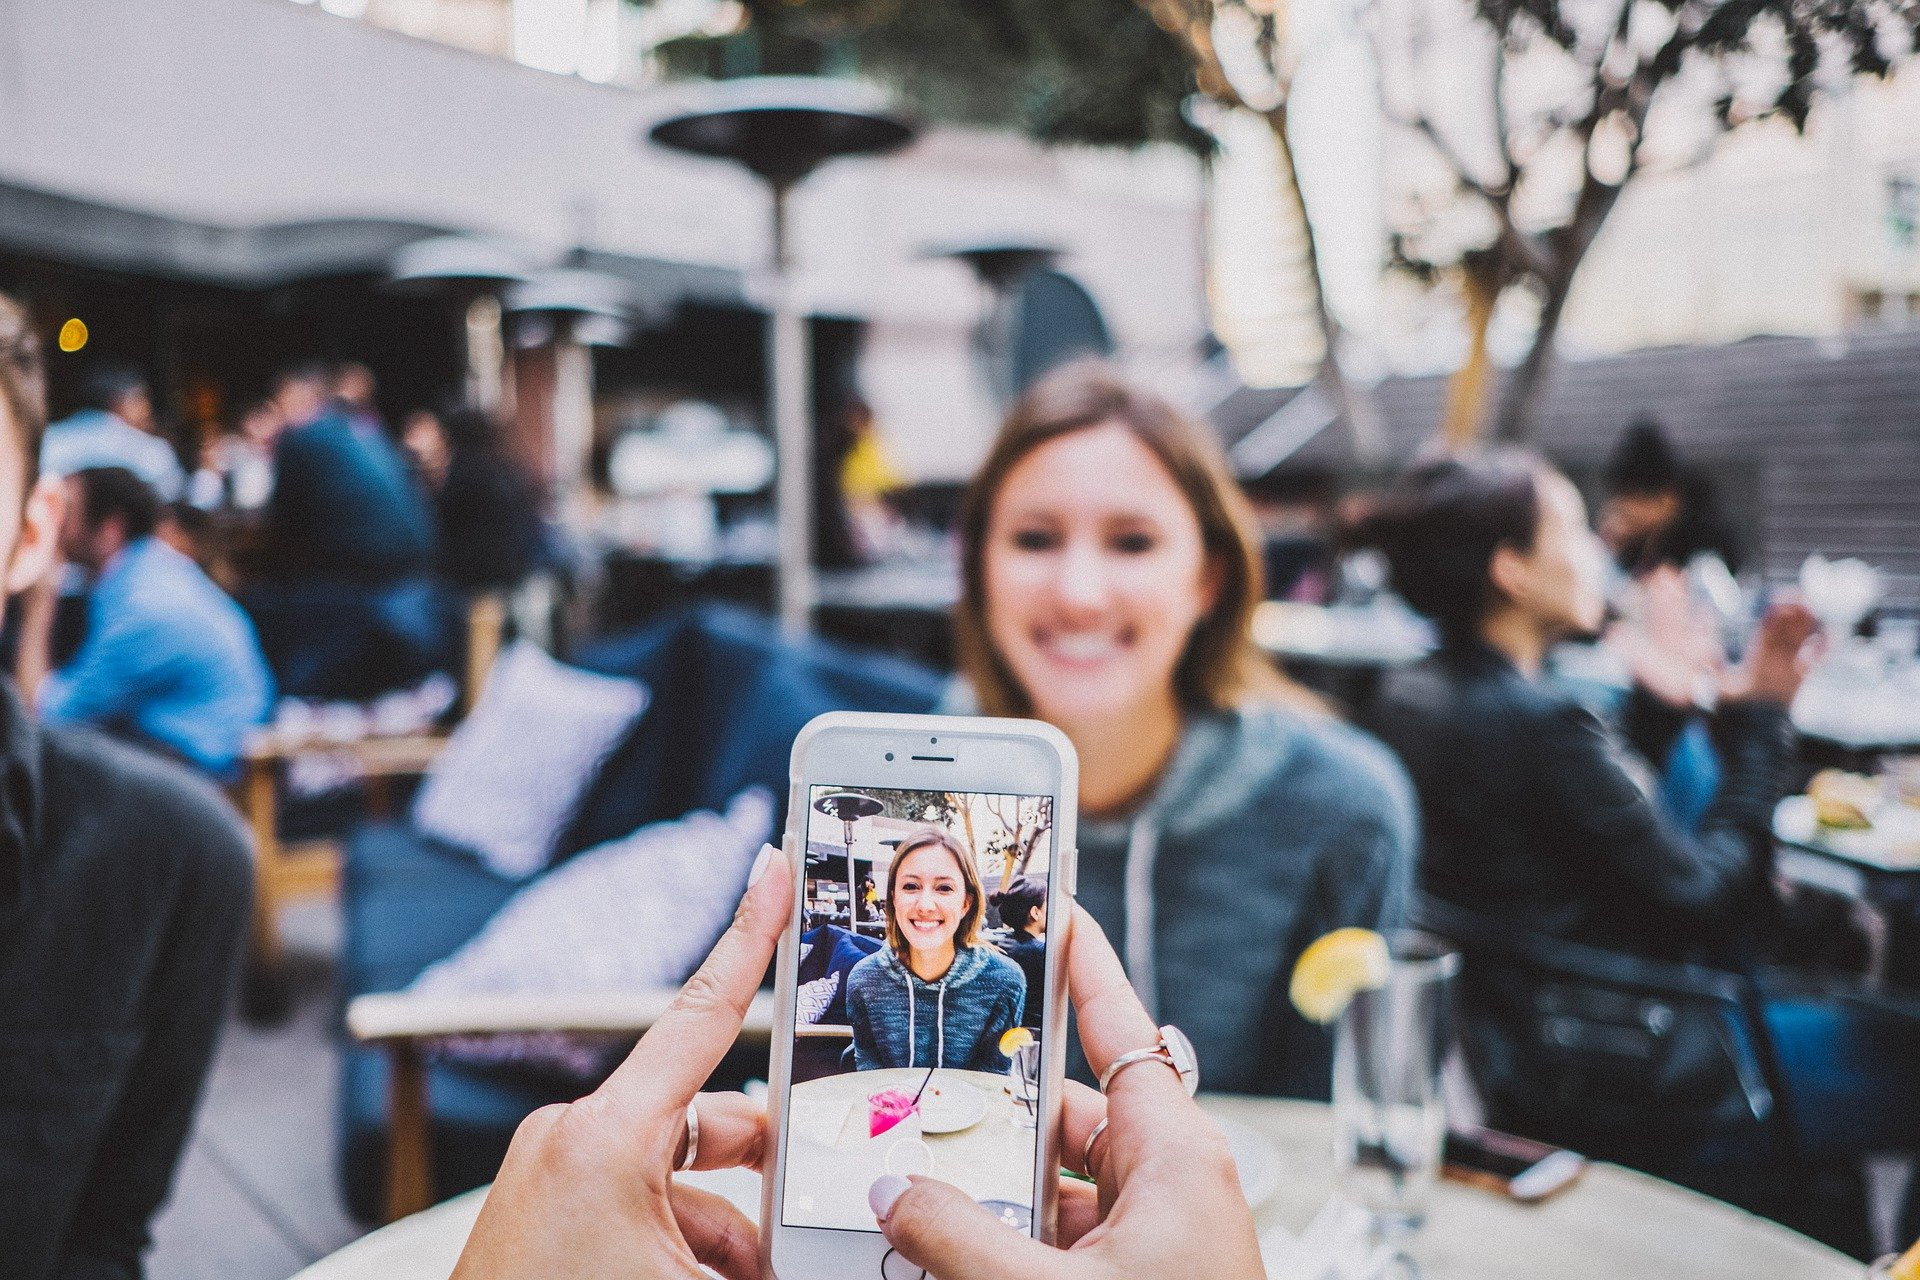 A person takes a photo of their friend with their phone. They are sharing a meal at an outdoor restaurant.